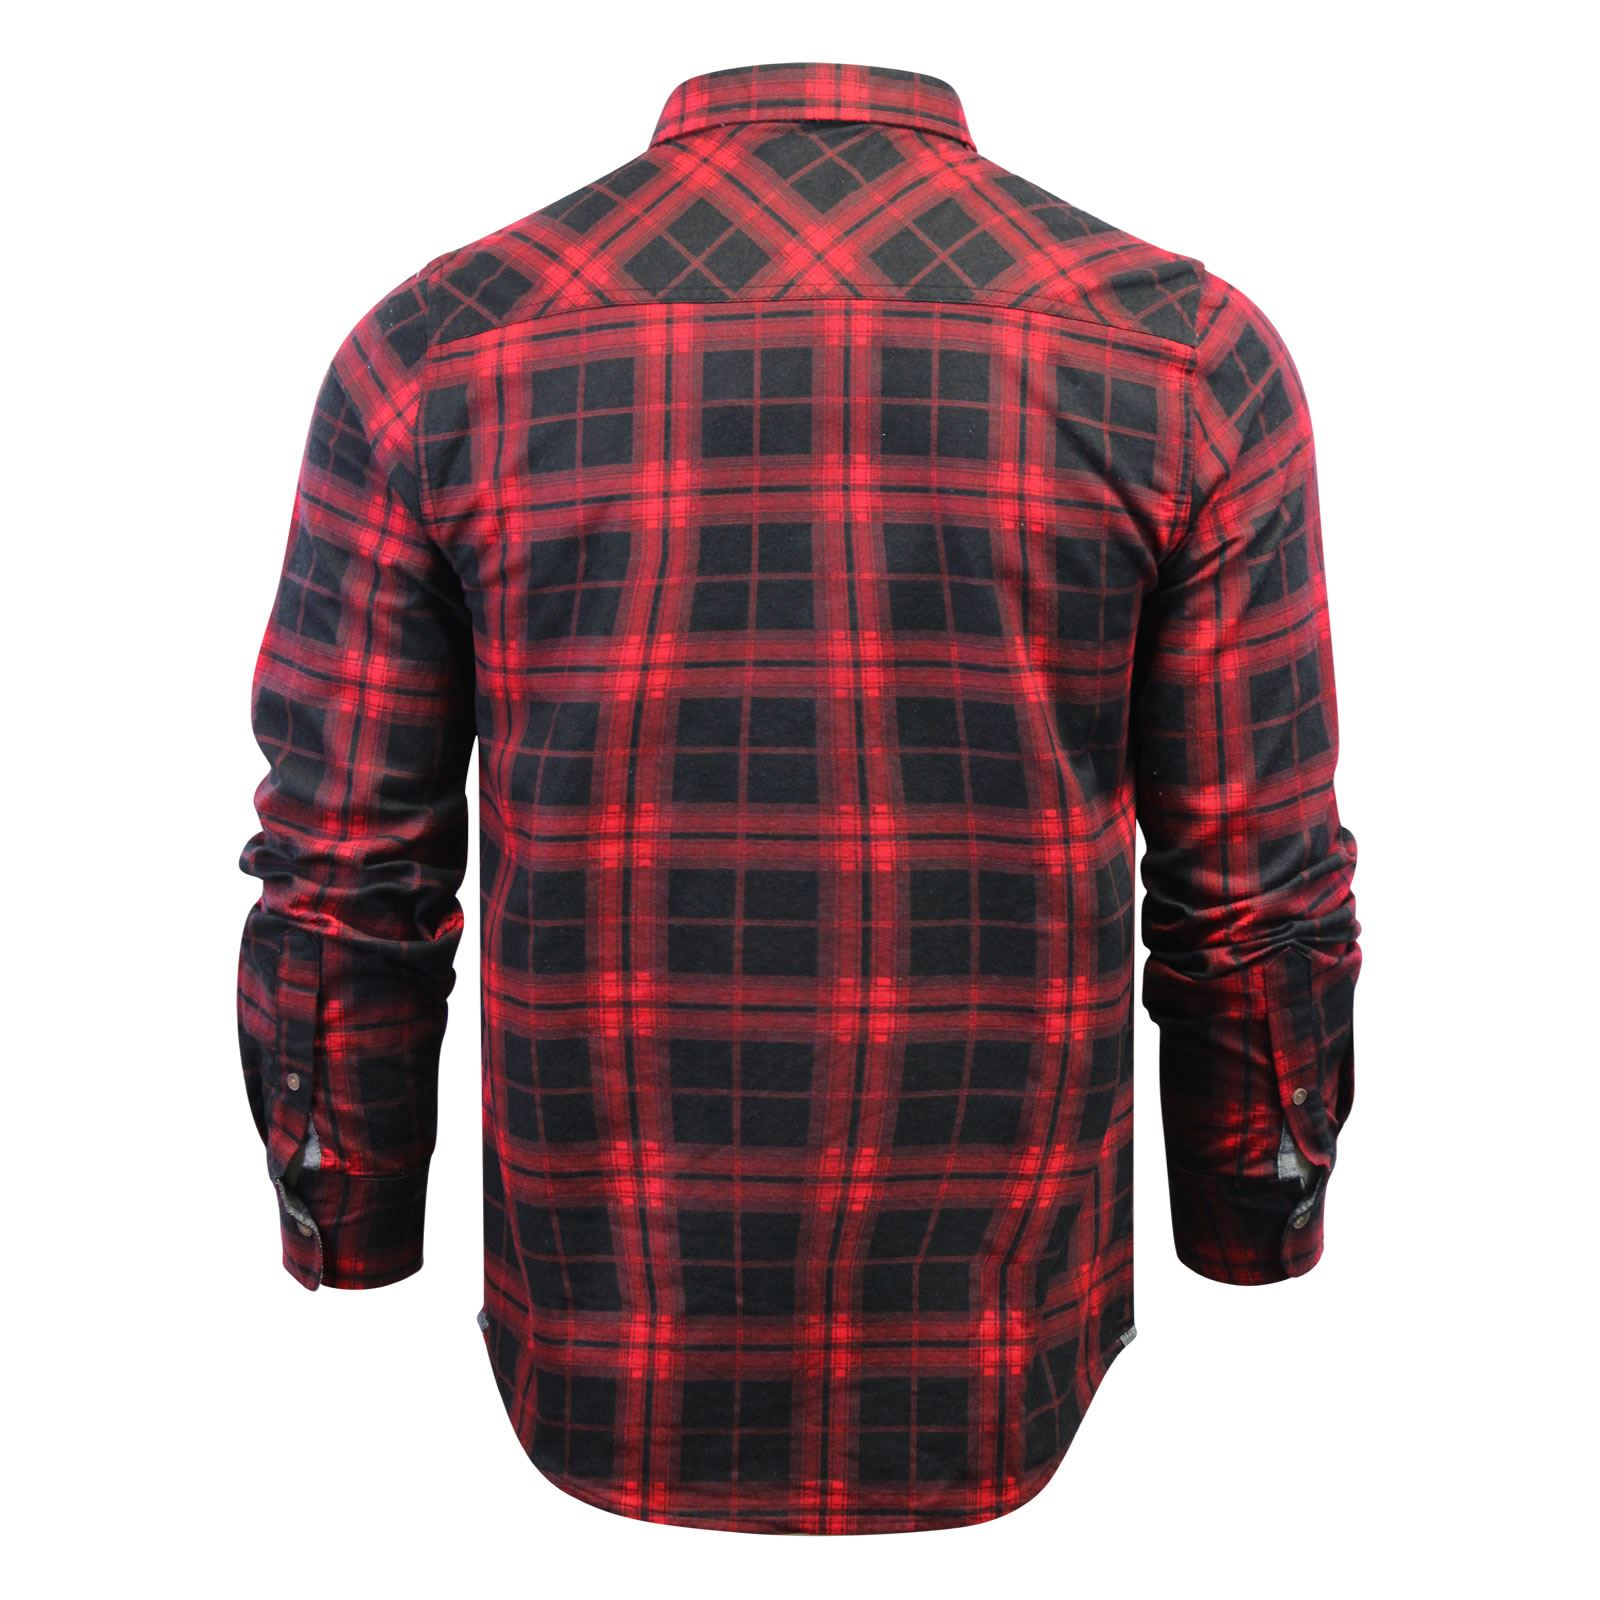 Mens-Check-Shirt-Brave-Soul-Flannel-Brushed-Cotton-Long-Sleeve-Casual-Top thumbnail 111